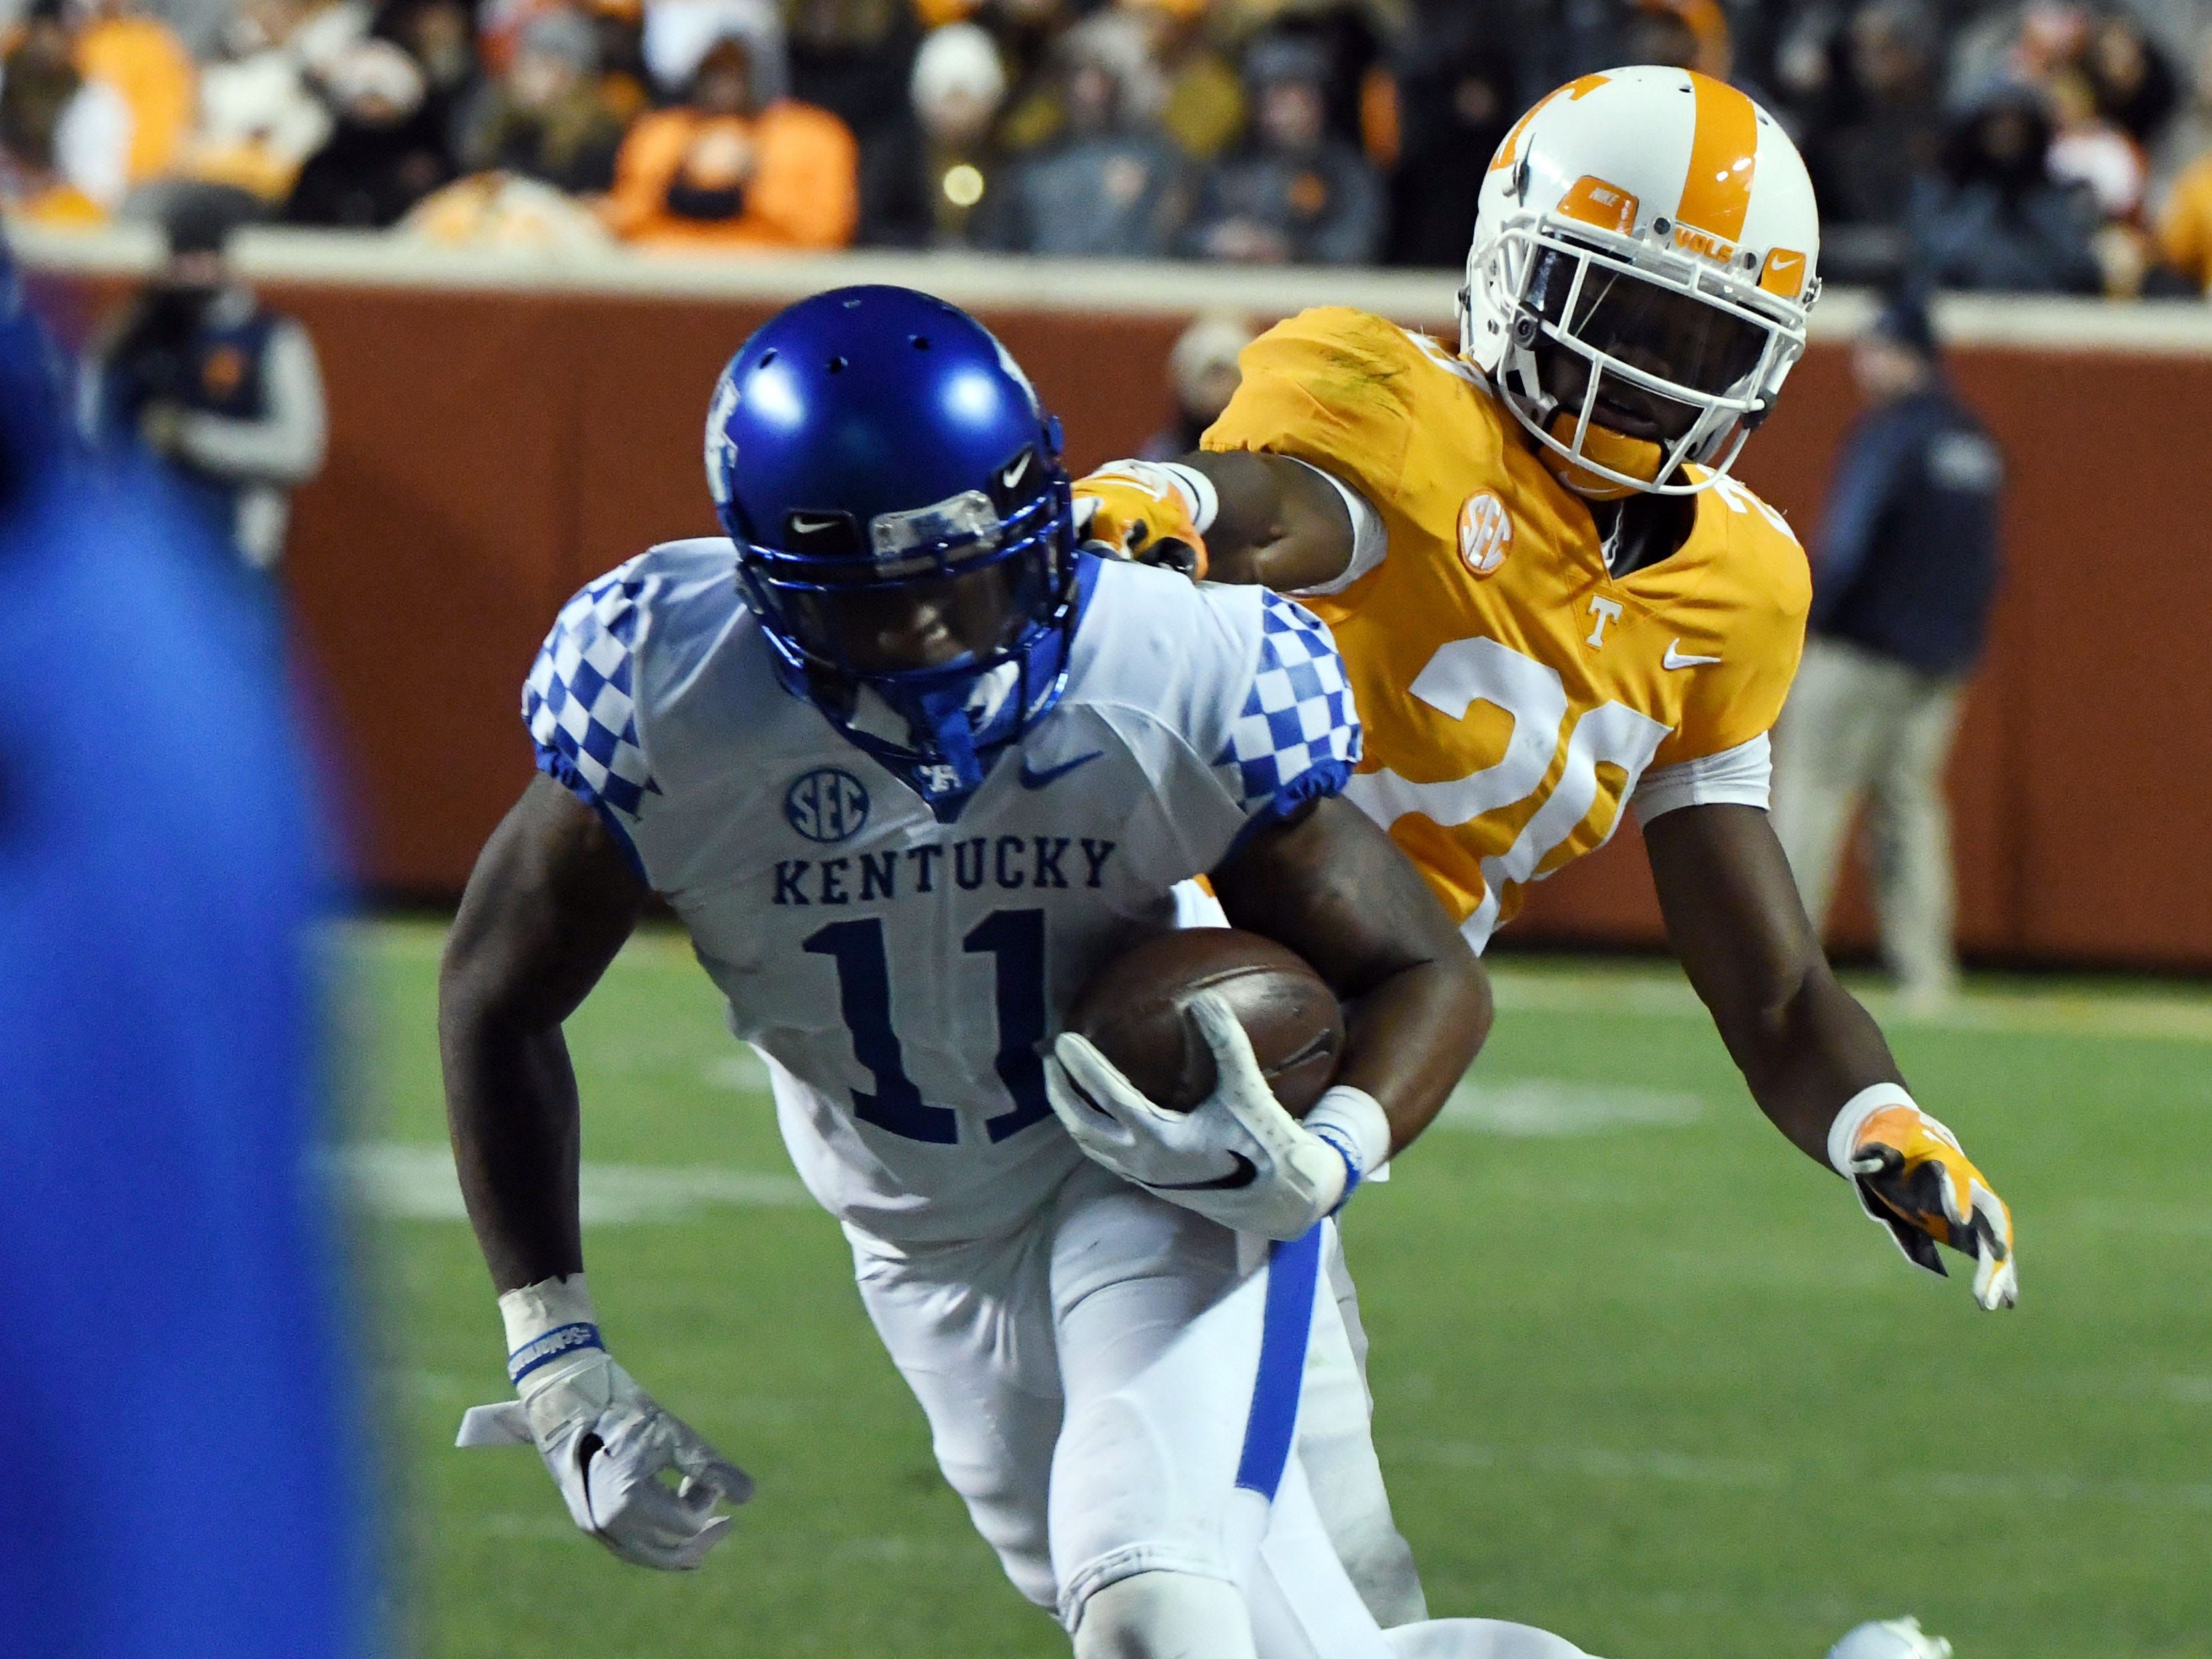 Tennessee defensive back Bryce Thompson (20) gets his hand on Kentucky wide receiver Tavin Richardson (11)  during first half action in the Kentucky game Saturday, November 10, 2018 at Neyland Stadium in Knoxville, Tenn.